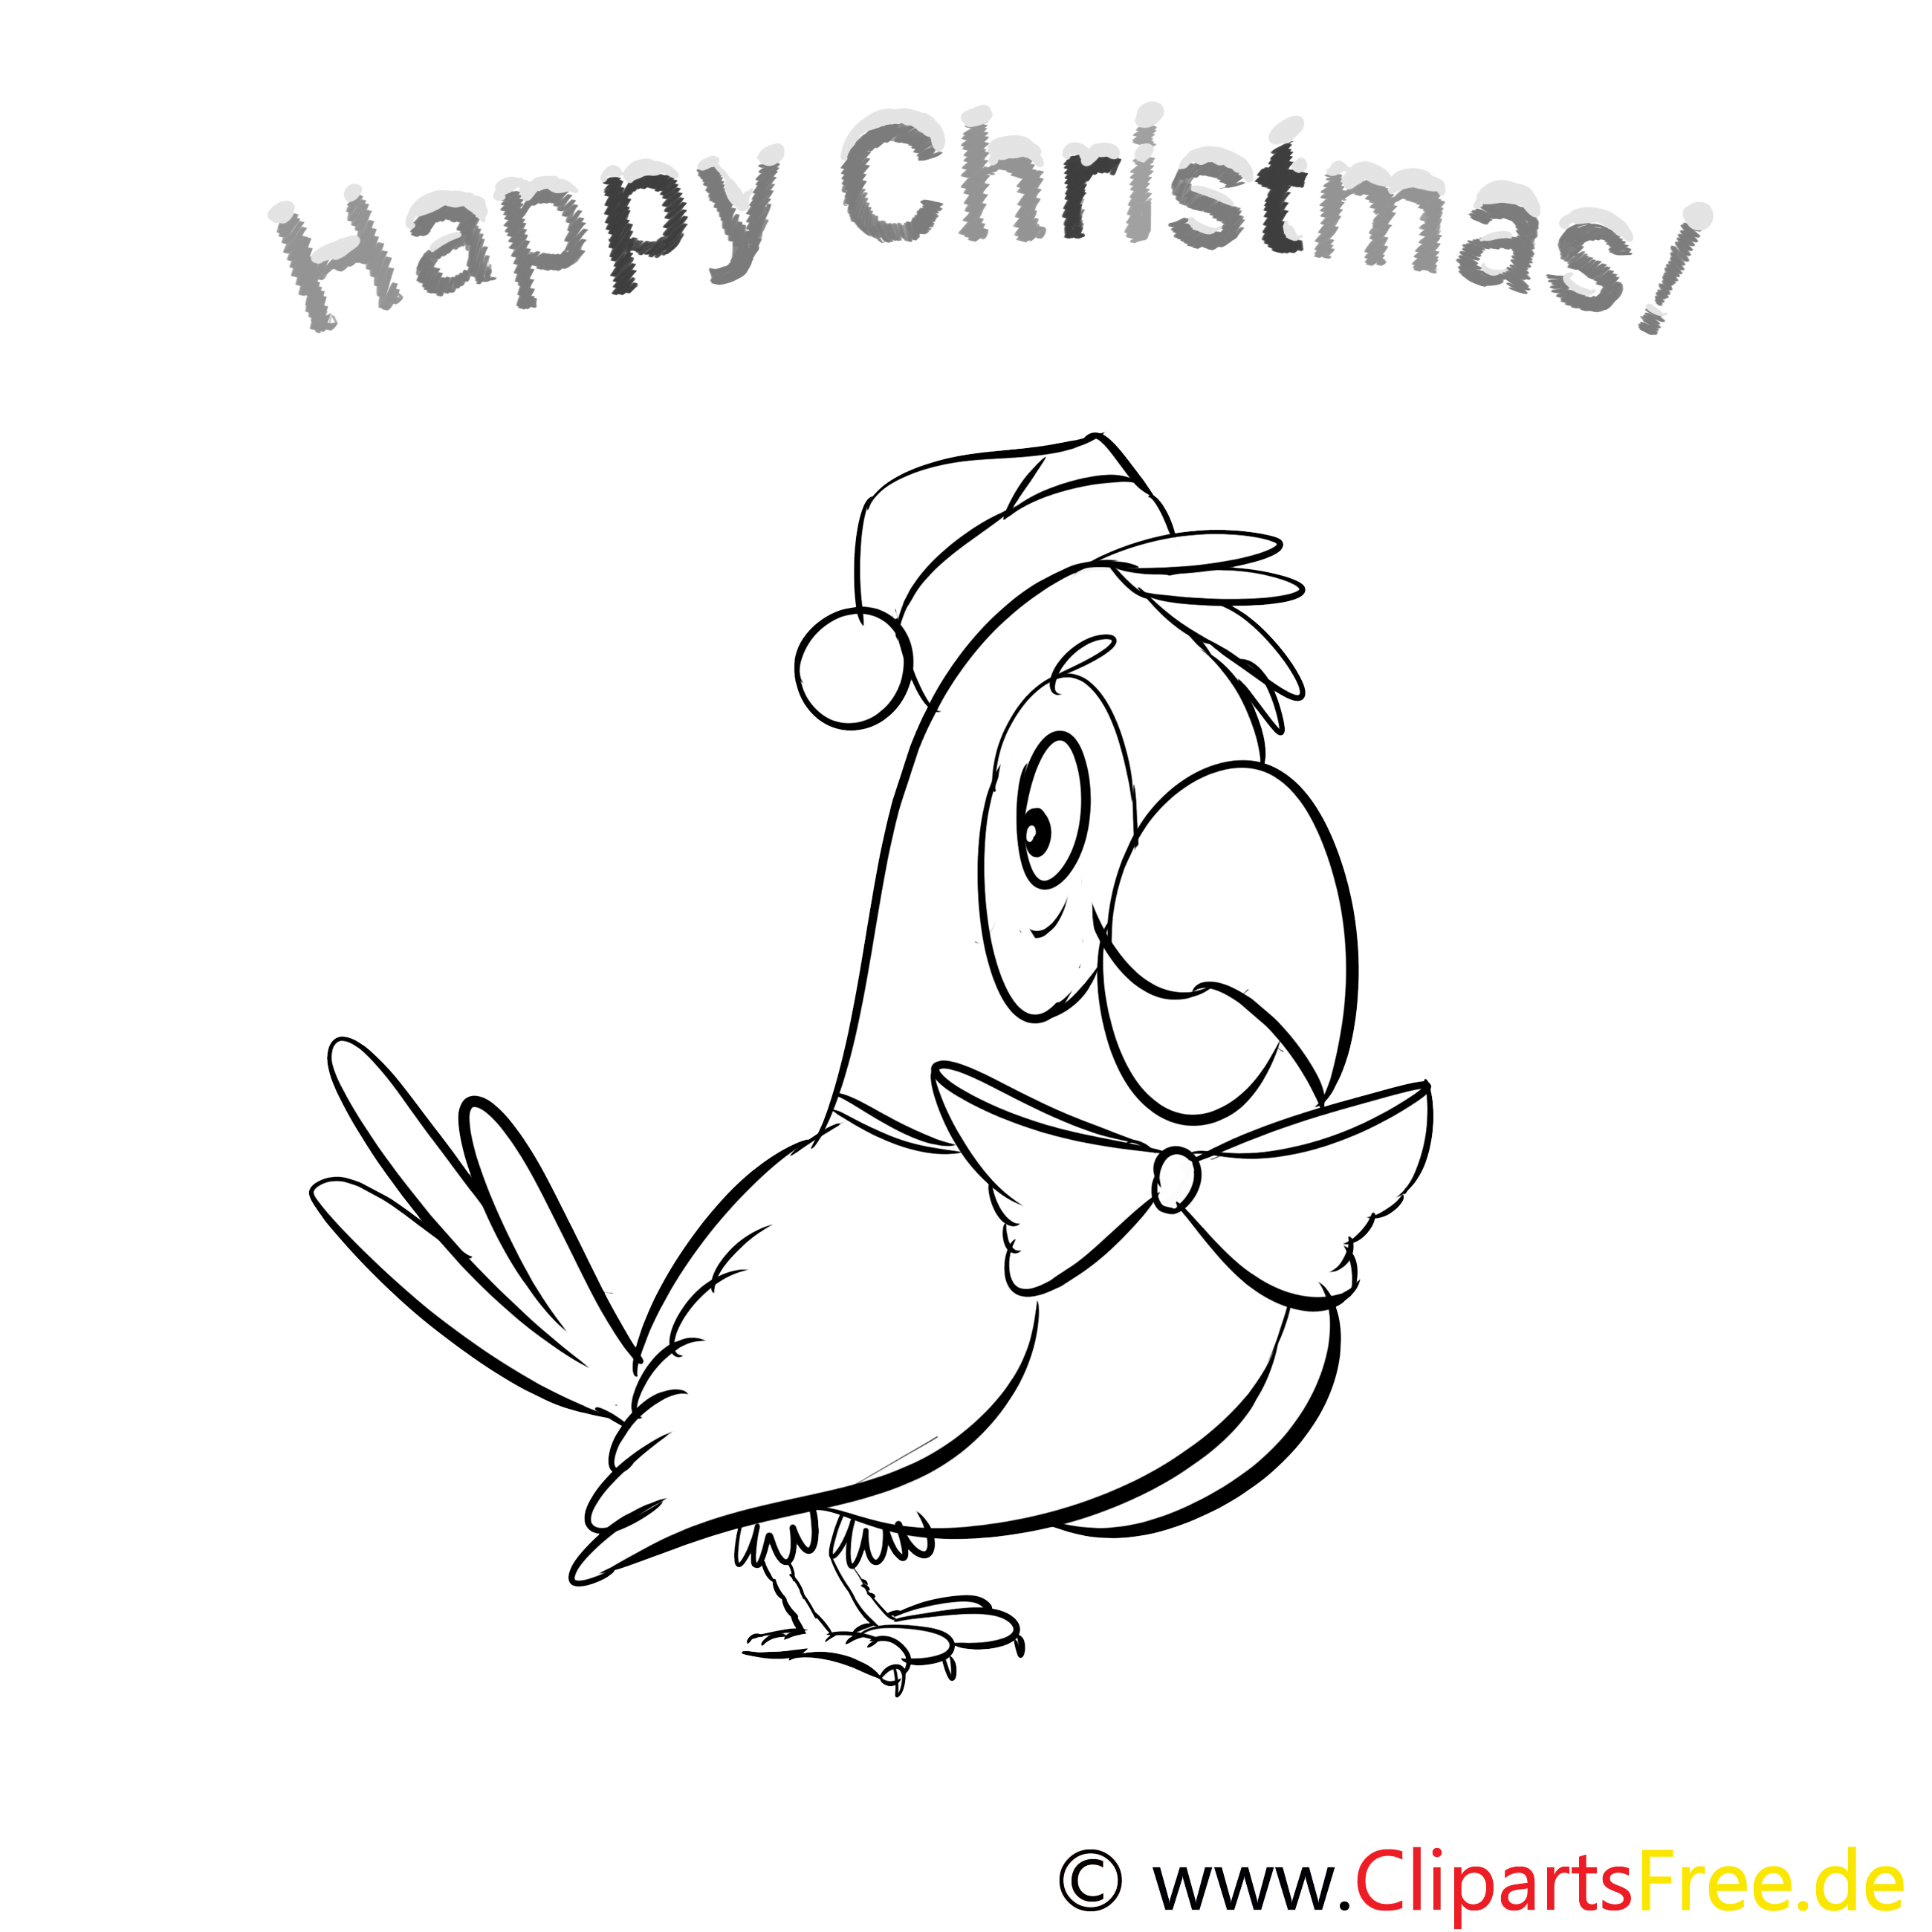 papagei schleife merry christmas coloring sheets malvorlagen